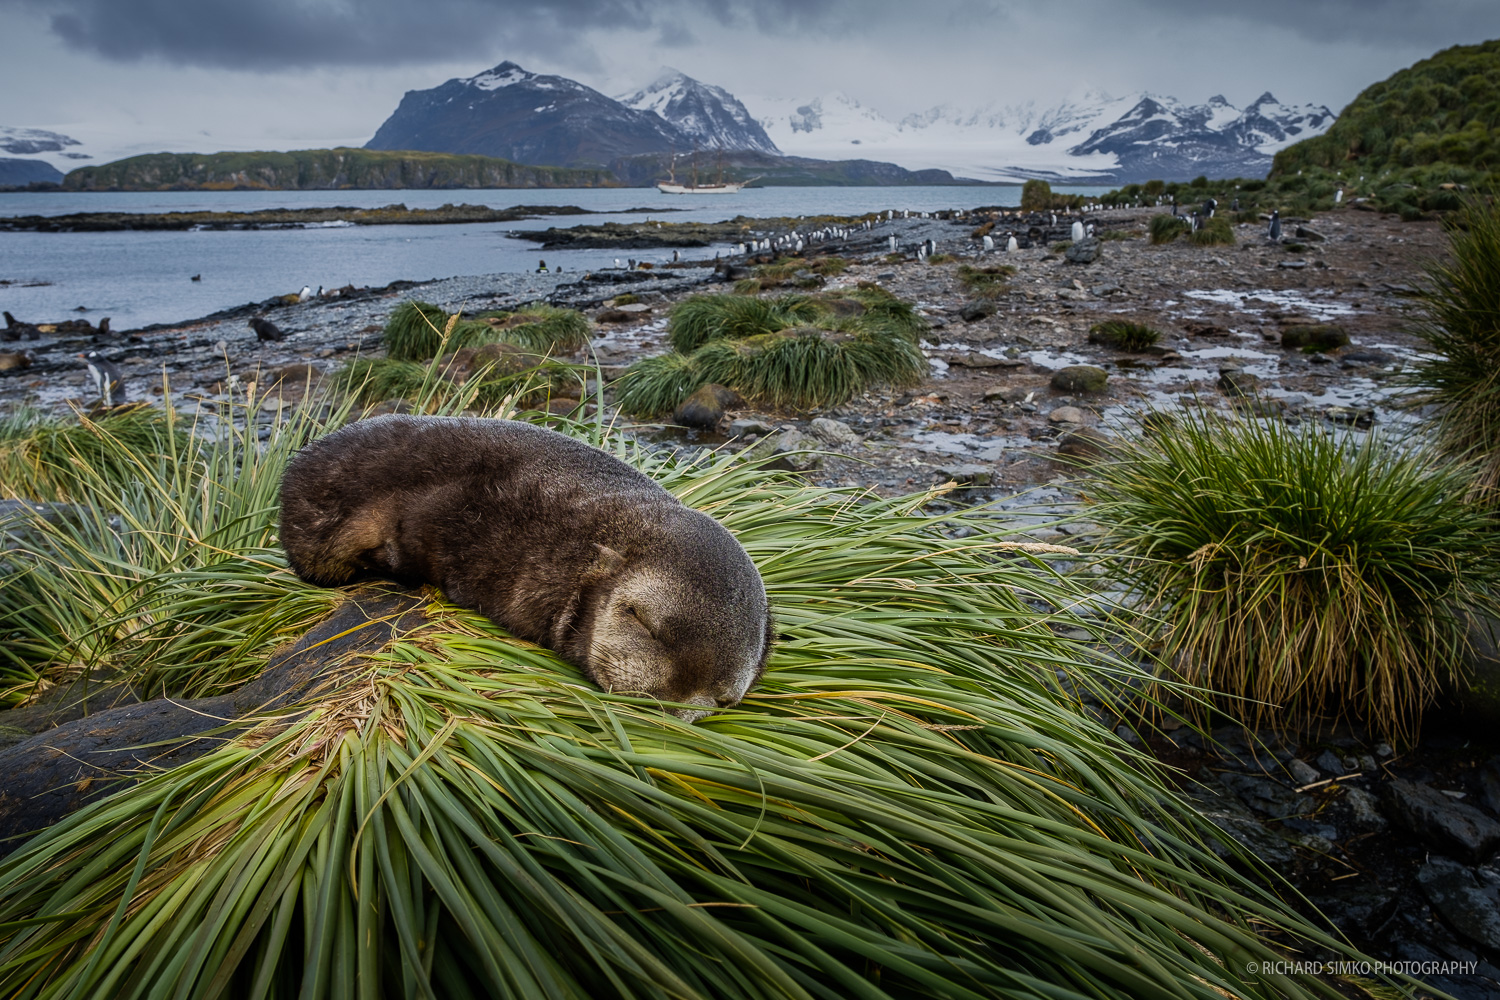 Antarctic fur seal pup is sleeping on patch of tussac grass on Prion Island. South Georgia.